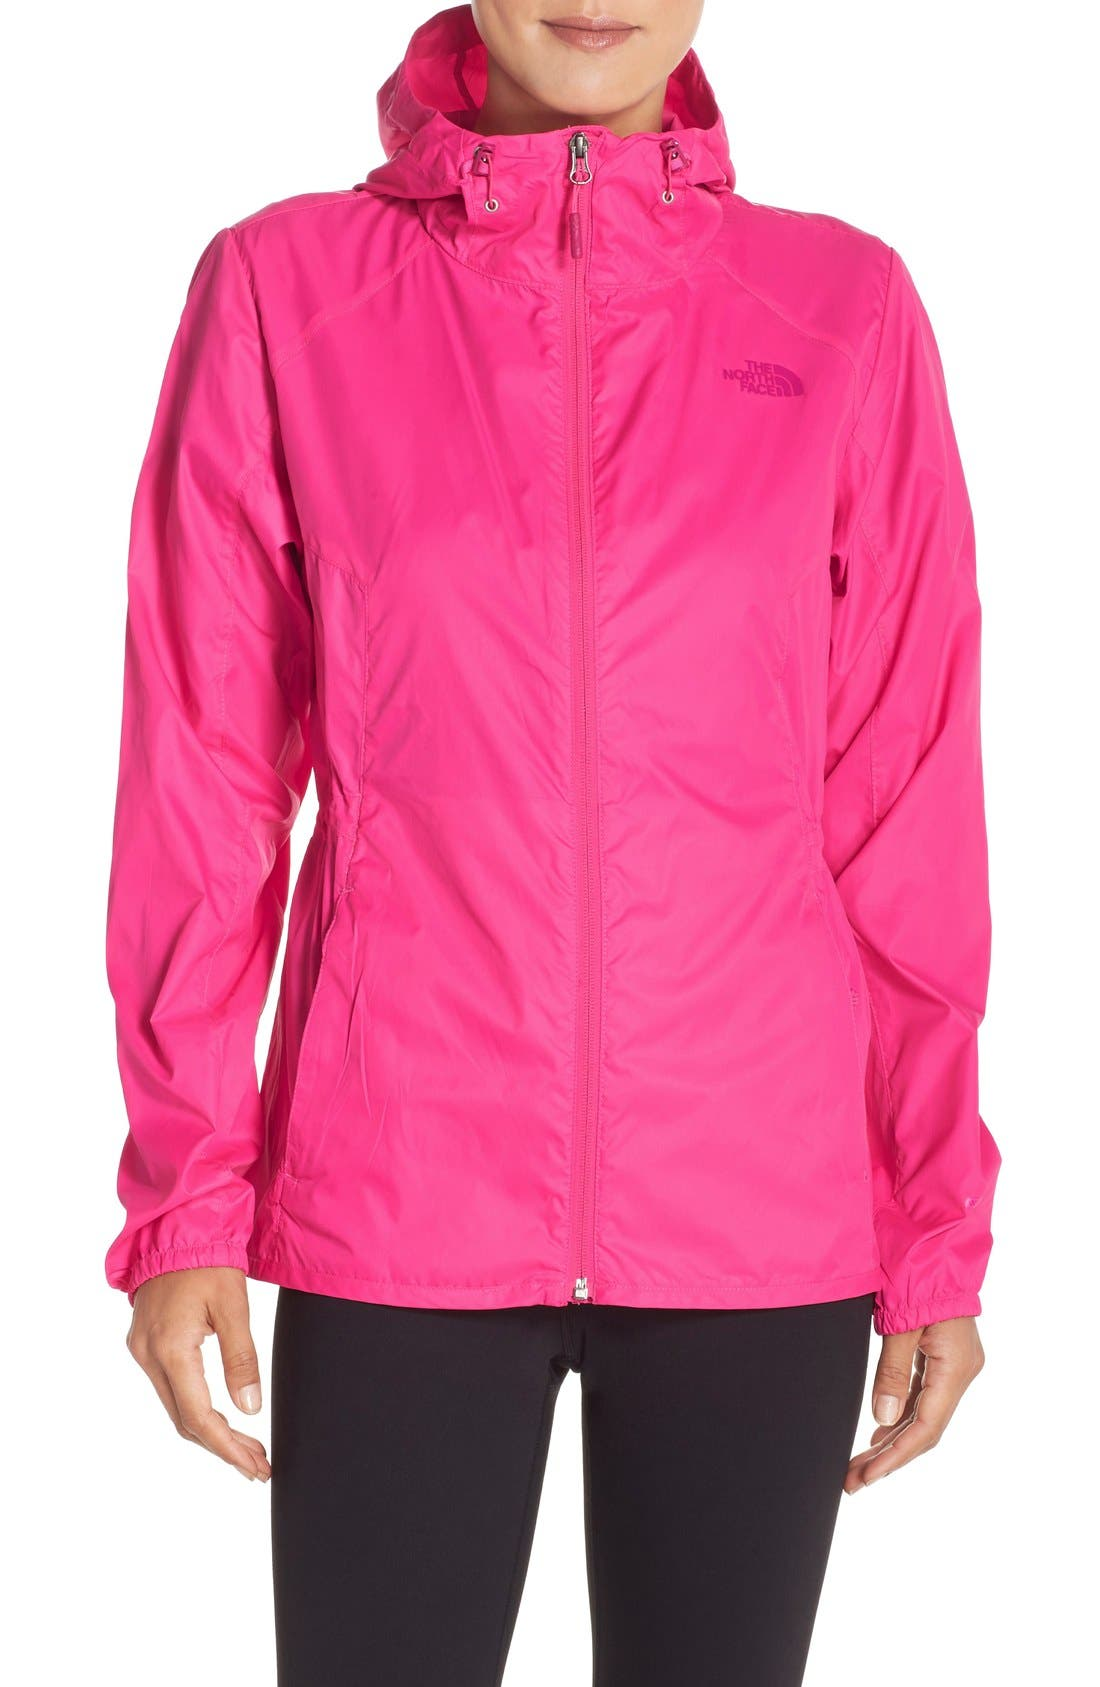 Main Image - The North Face 'Flyweight' Hooded Jacket